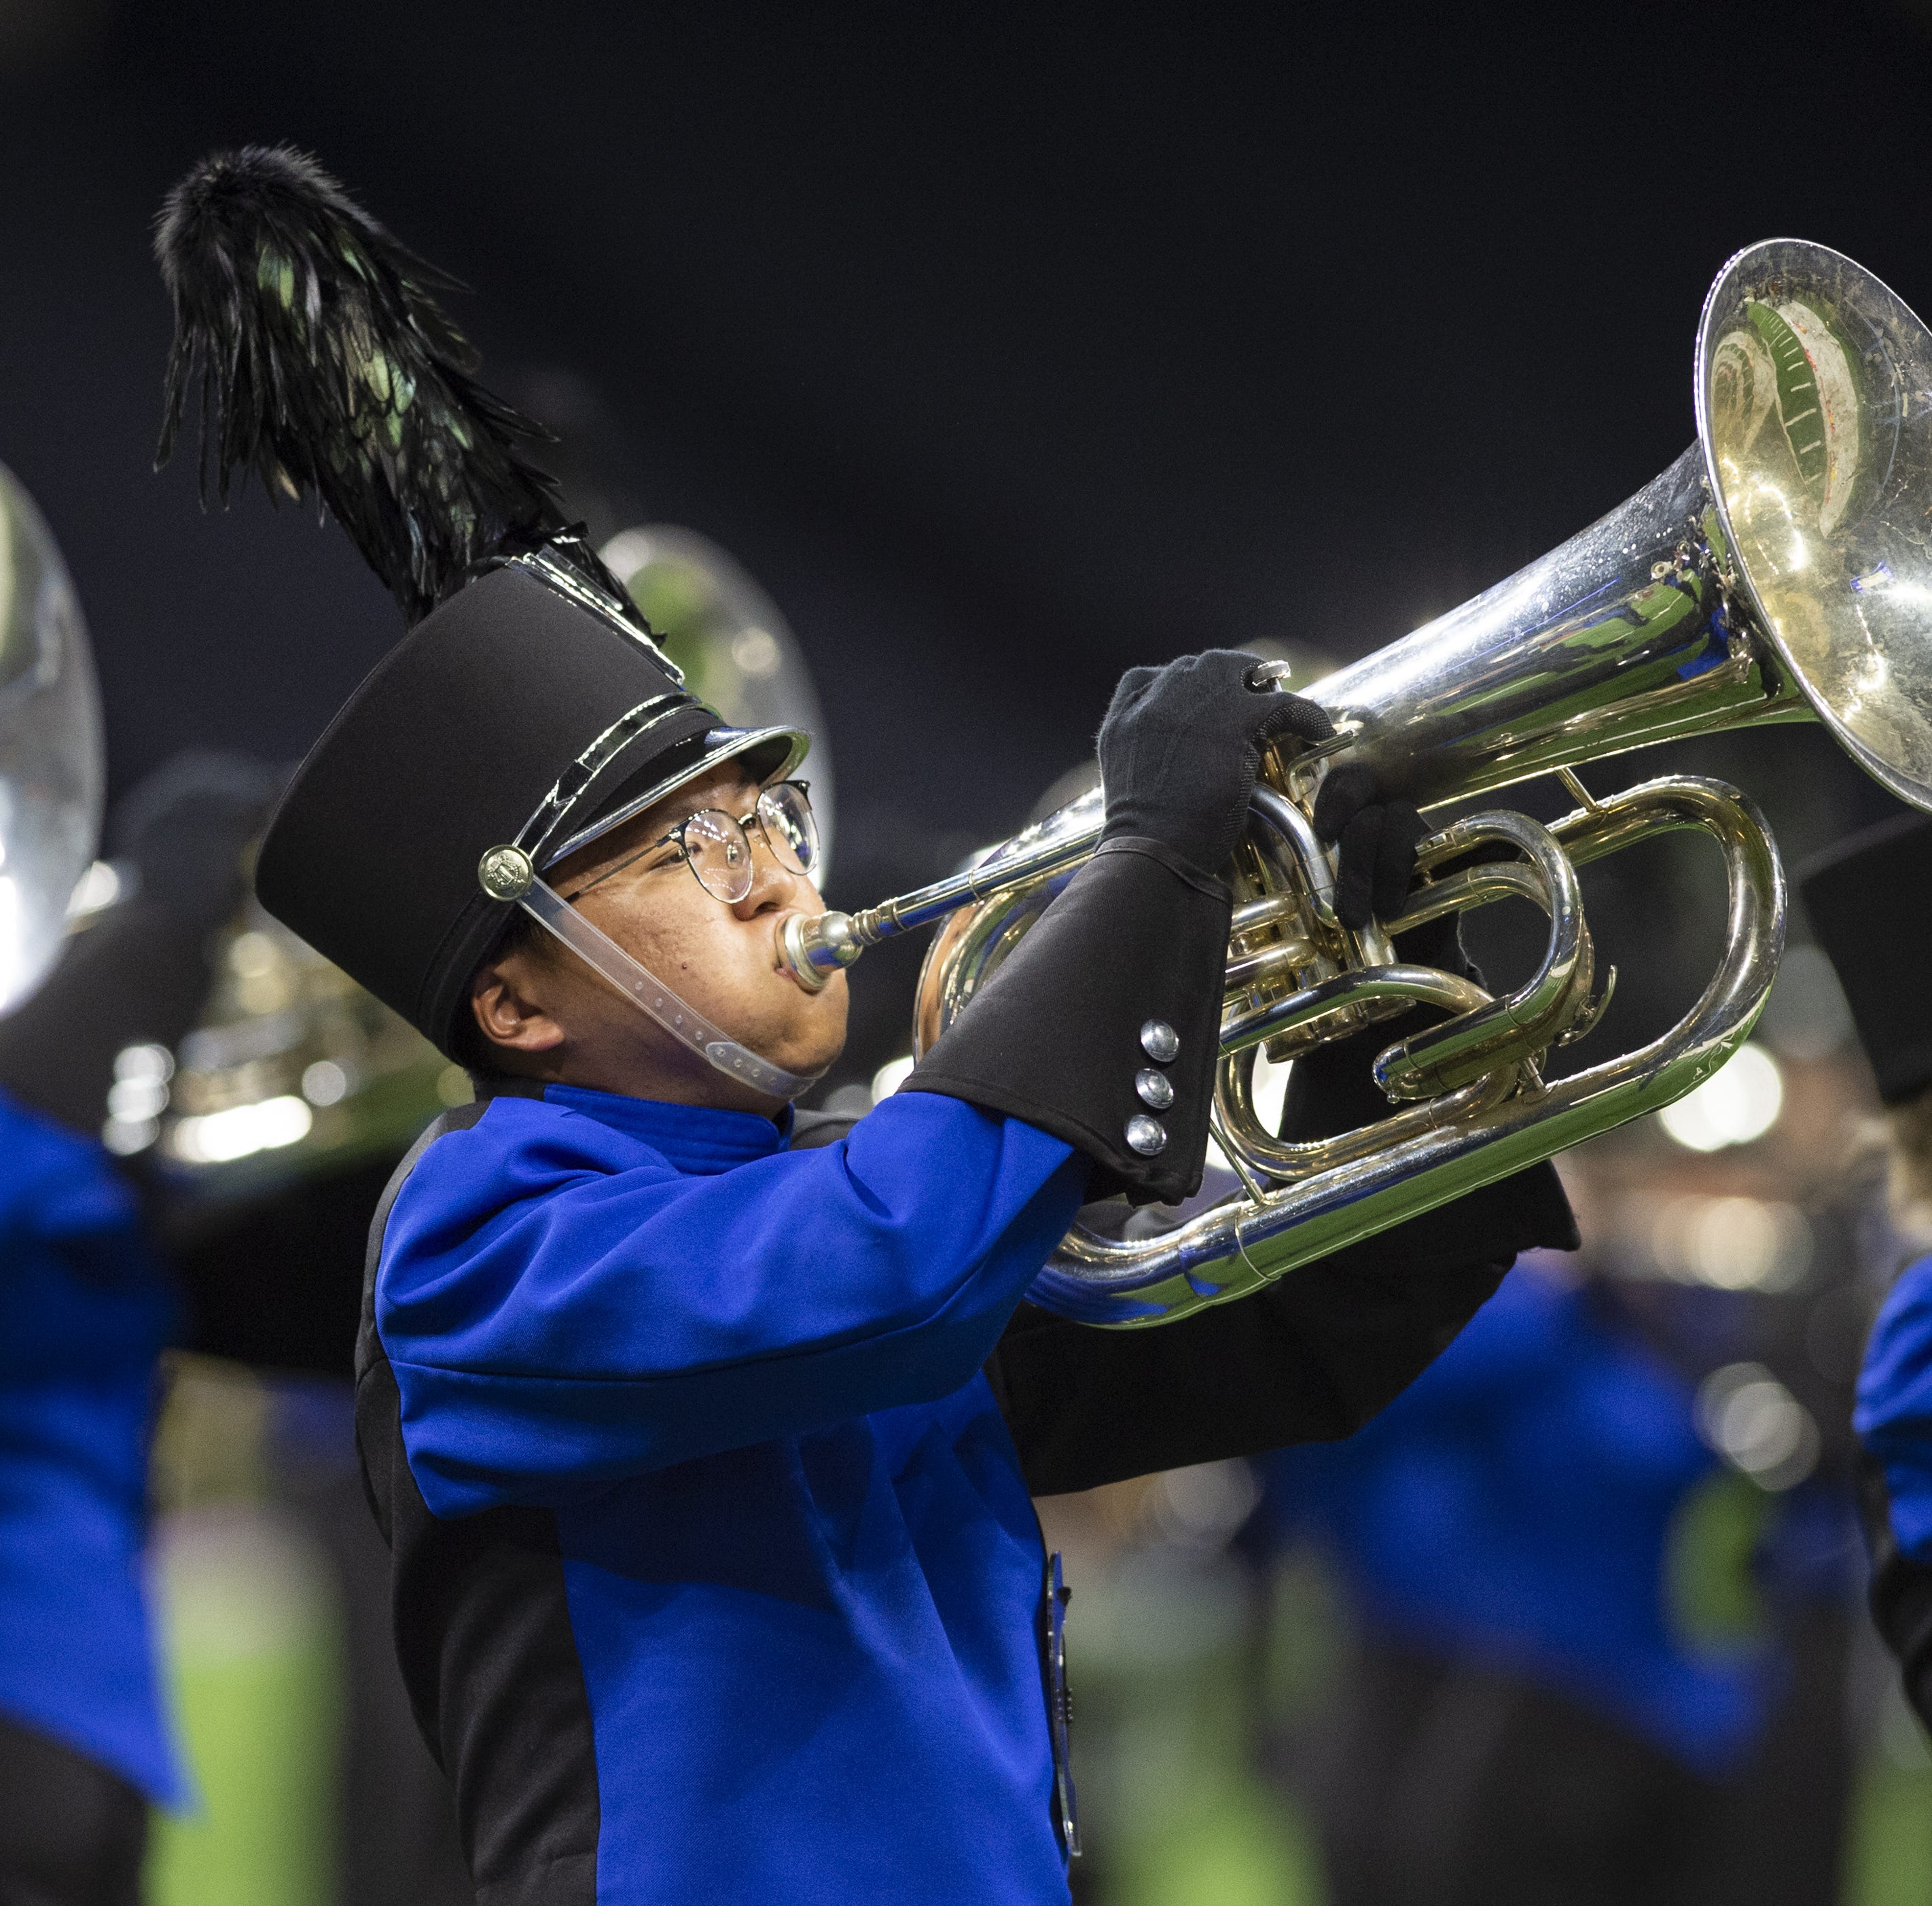 Carmel marching band wins super regional